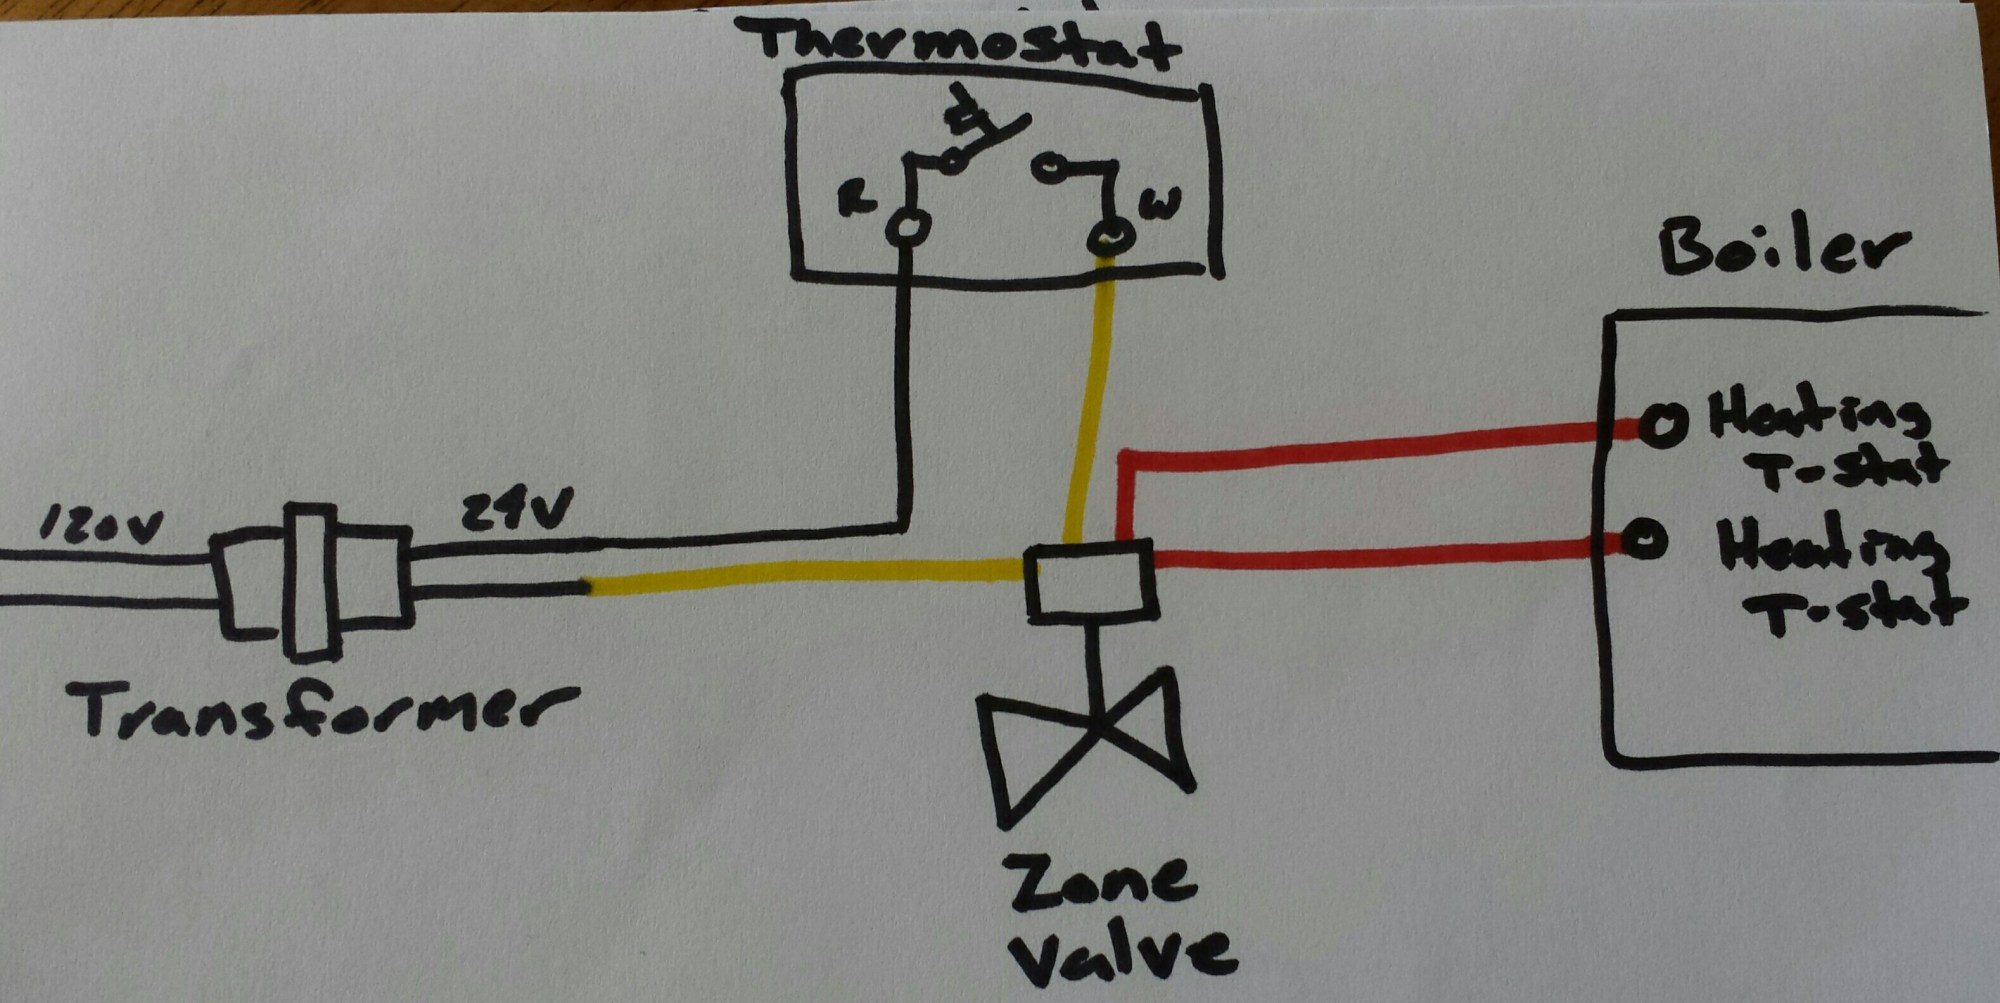 hight resolution of v8043e1012 to 2 wire thermostat wiring diagram wiring diagrams second need help with completing zone